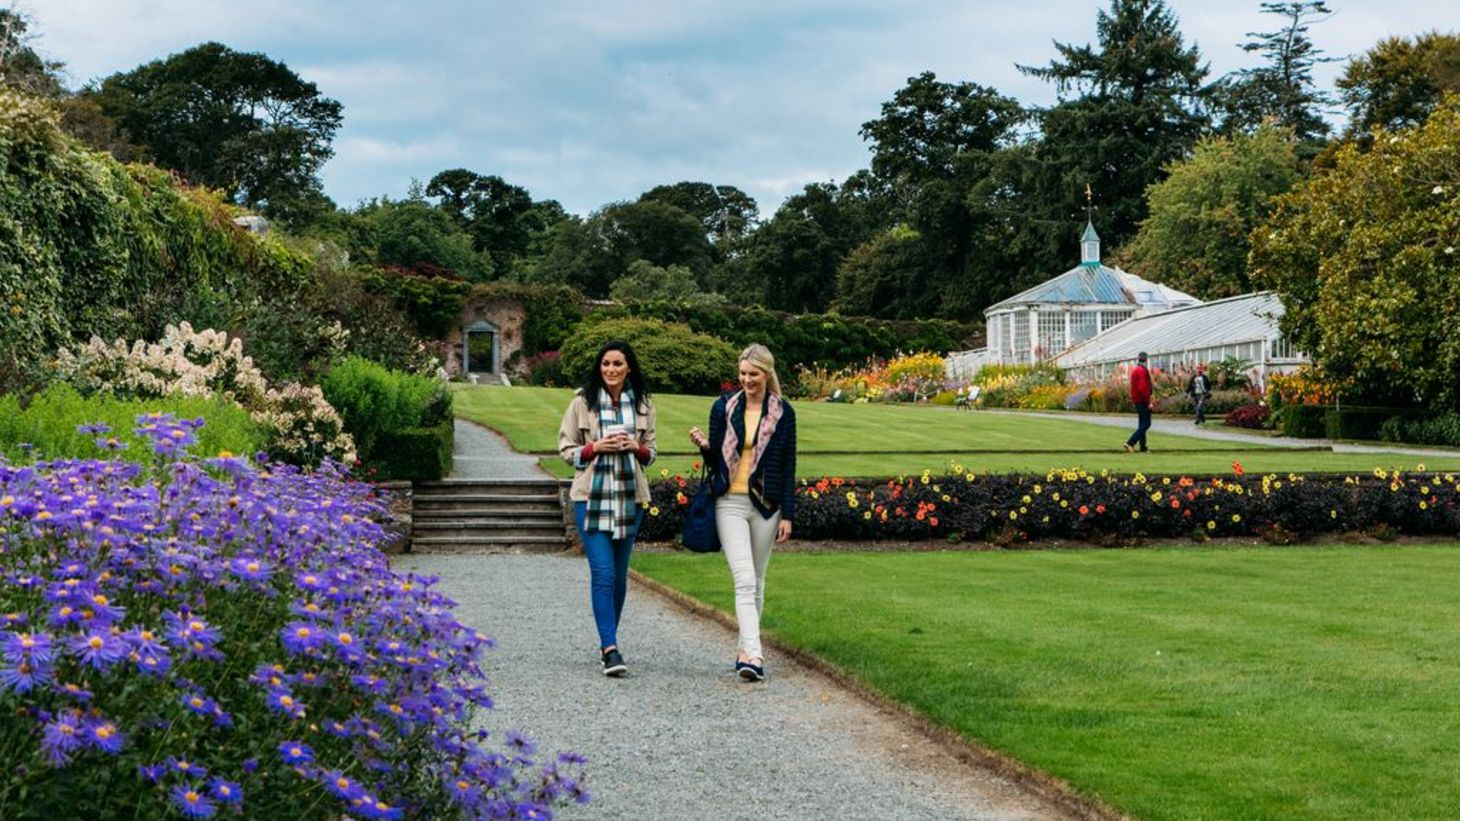 Take a walk through the immaculate gardens at Mount Congreve House.